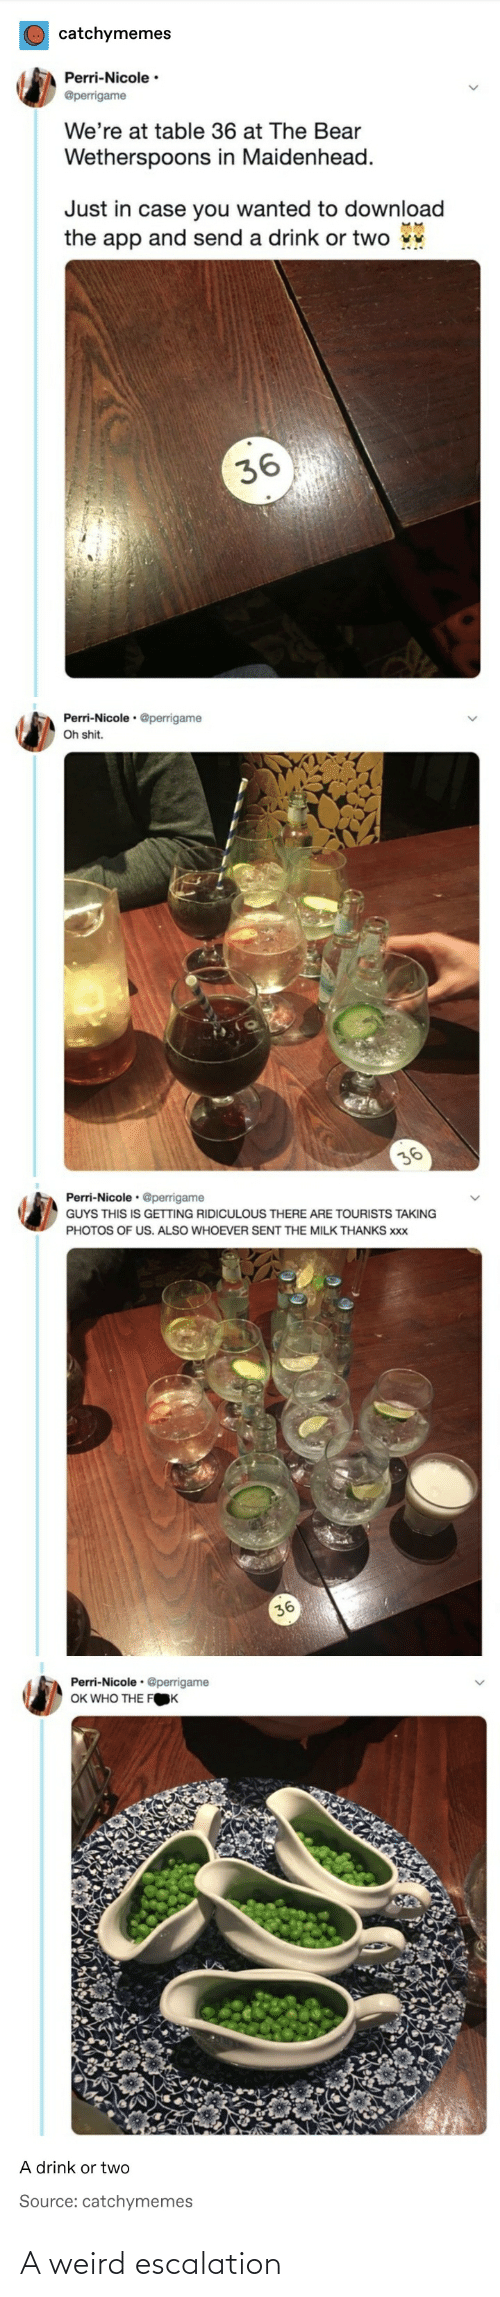 perri: catchymemes  Perri-Nicole ·  @perrigame  We're at table 36 at The Bear  Wetherspoons in Maidenhead.  Just in case you wanted to download  the app and send a drink or two v  36  Perri-Nicole • @perrigame  Oh shit.  36  Perri-Nicole • @perrigame  GUYS THIS IS GETTING RIDICULOUS THERE ARE TOURISTS TAKING  PHOTOS OF US. ALSO WHOEVER SENT THE MILK THANKS xxx  36  Perri-Nicole · @perrigame  OK WHO THE FOK  A drink or two  Source: catchymemes A weird escalation